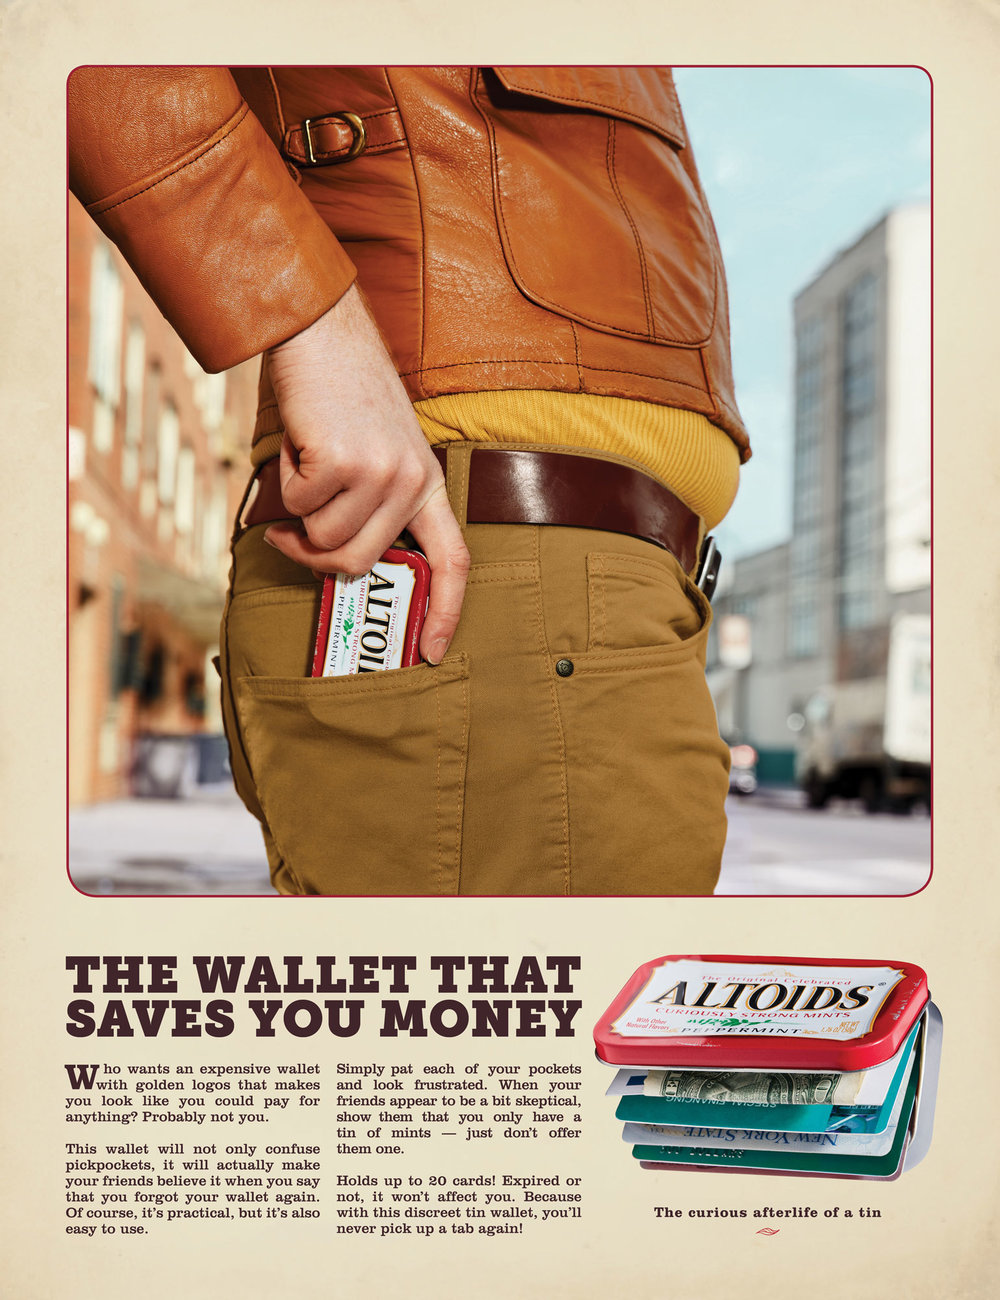 Altoids - The Wallet